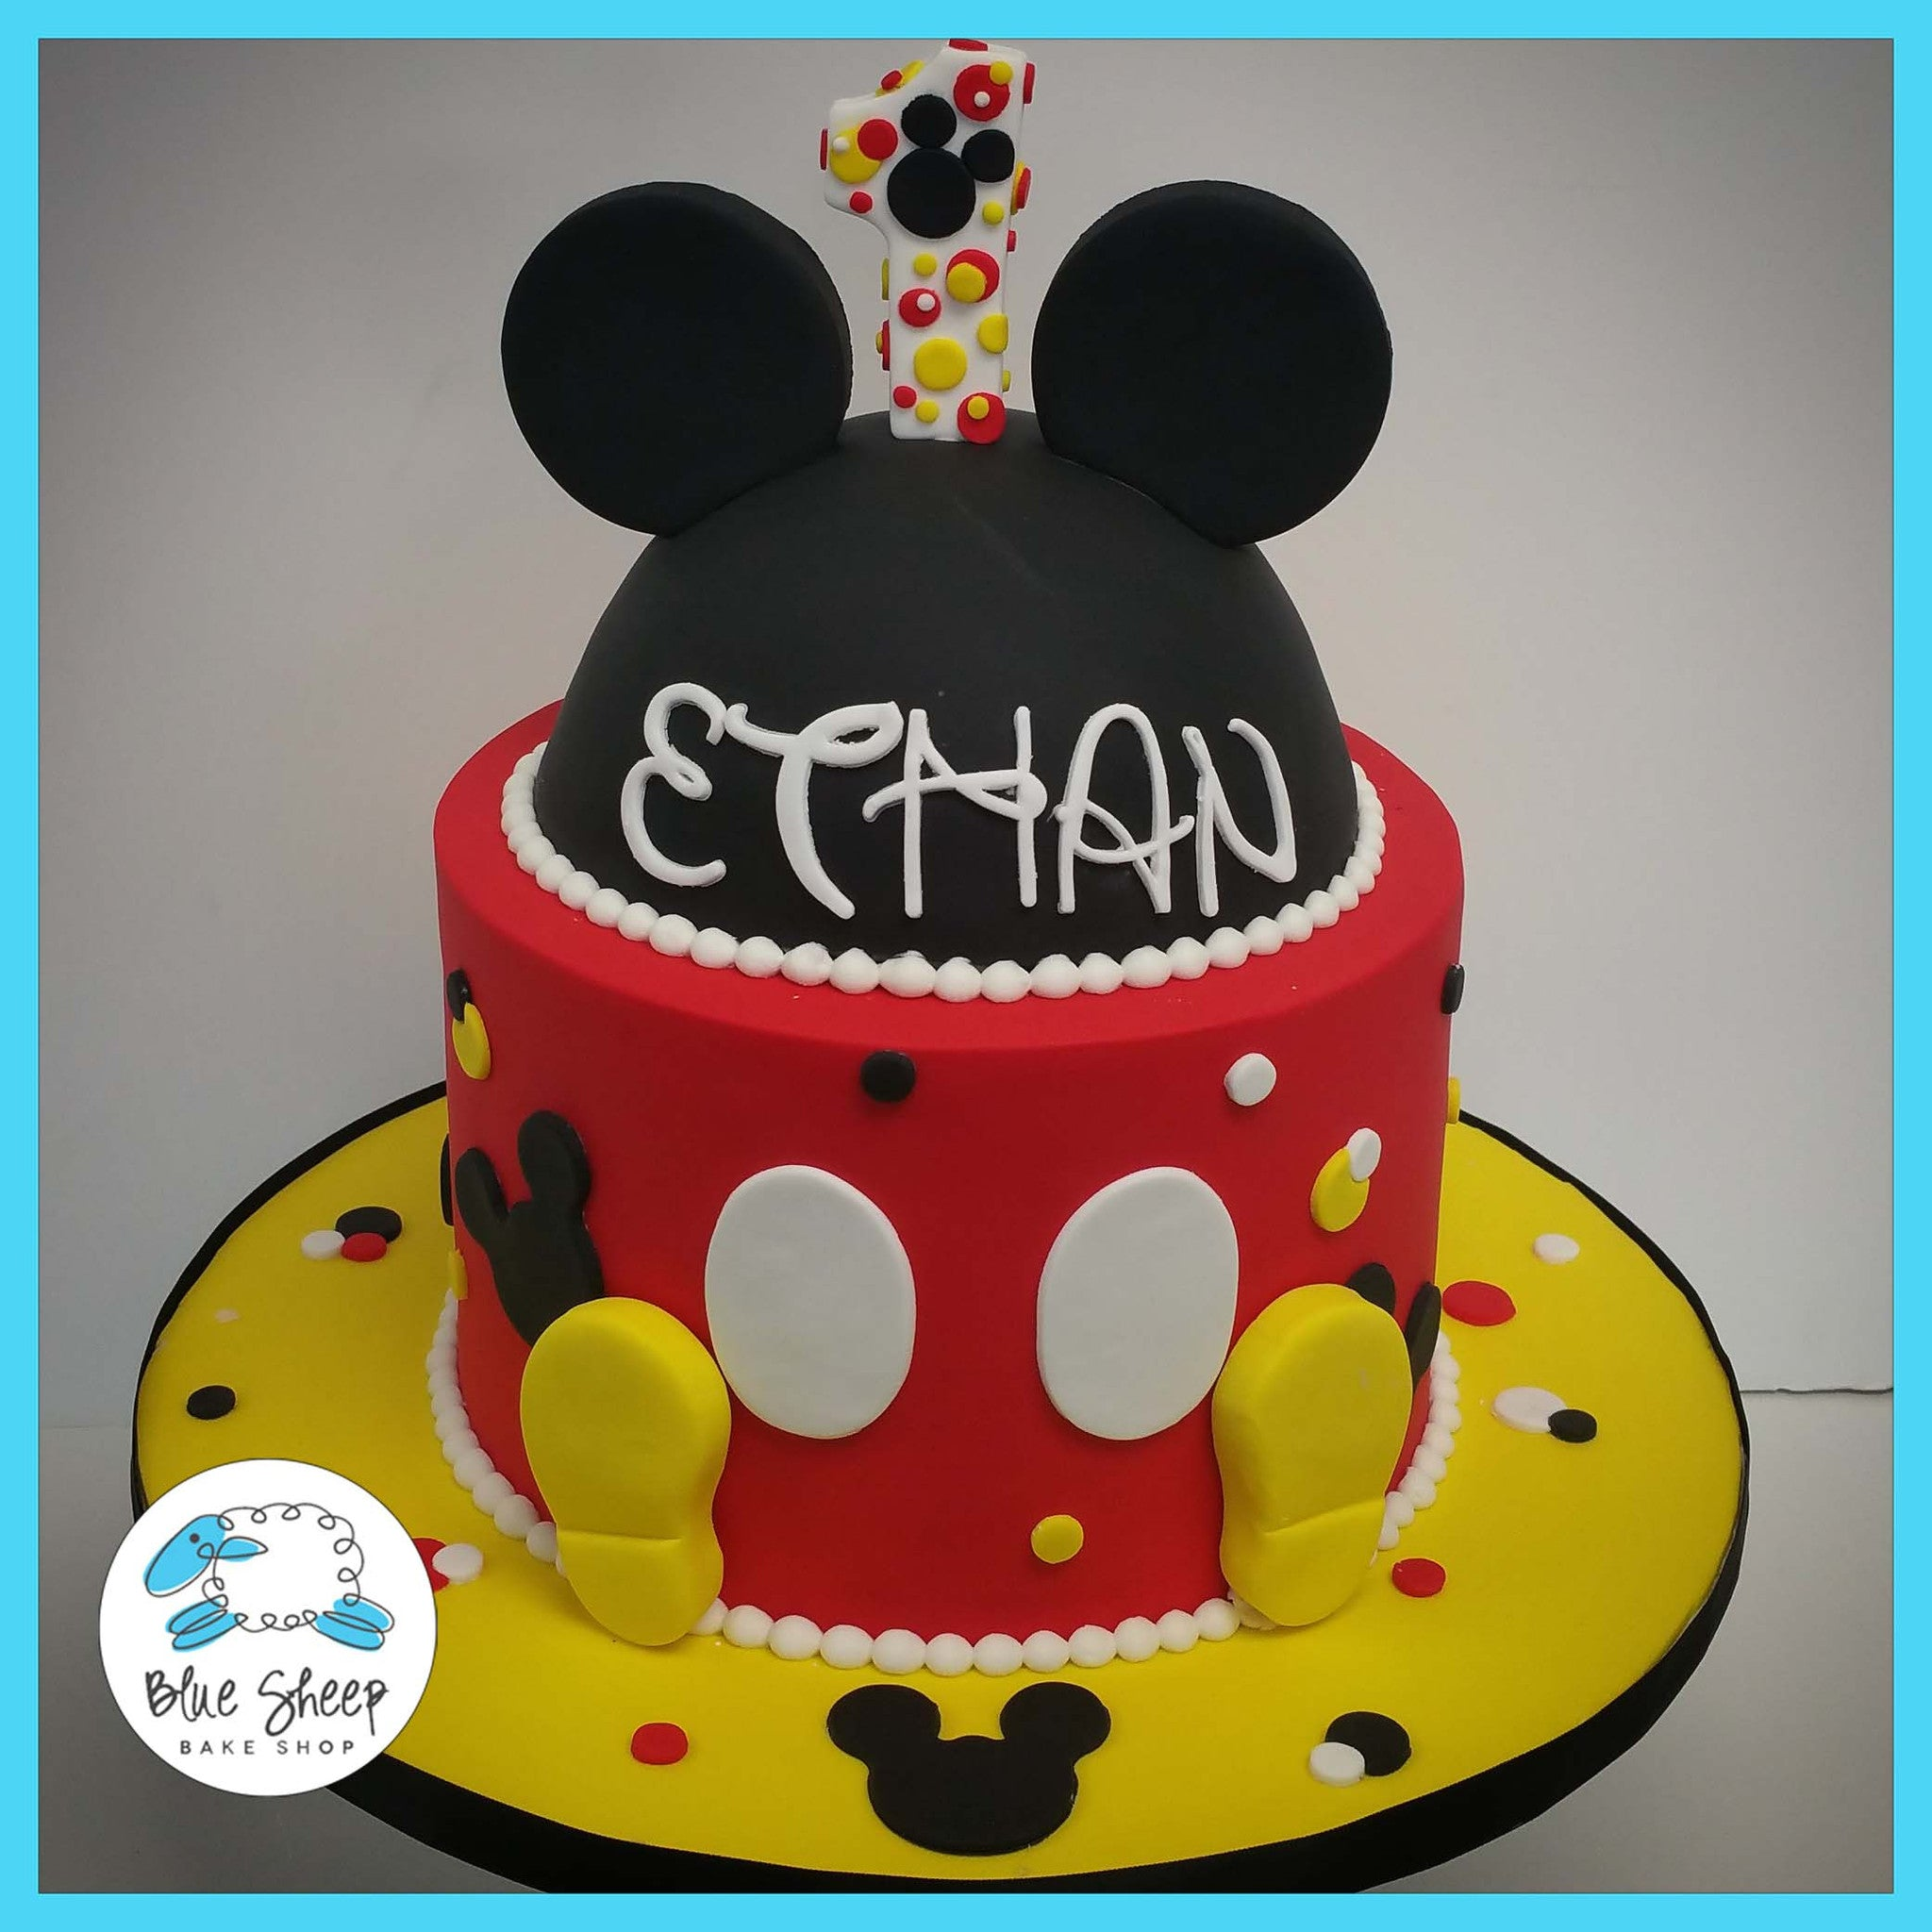 Stupendous Mickey Mouse Inspired Birthday Cake Blue Sheep Bake Shop Funny Birthday Cards Online Fluifree Goldxyz